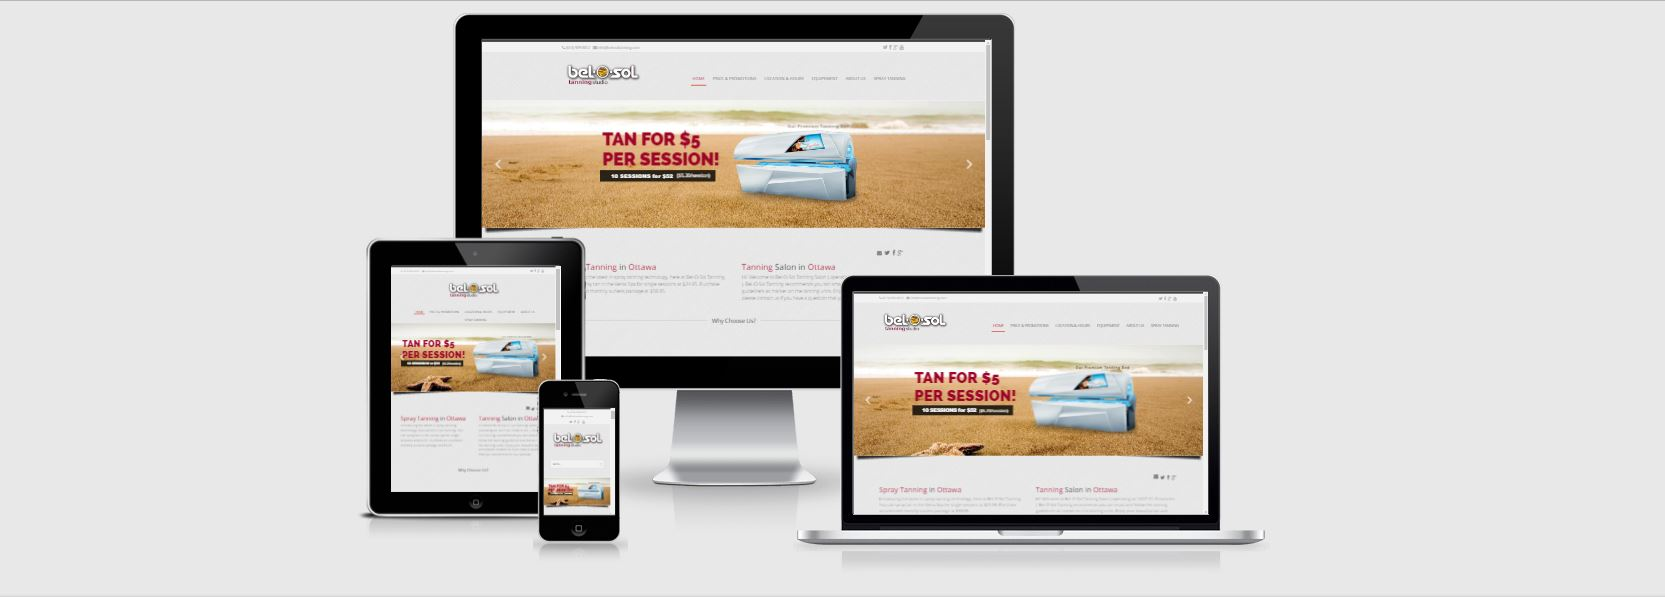 Website Design www.belosoltanning.com2